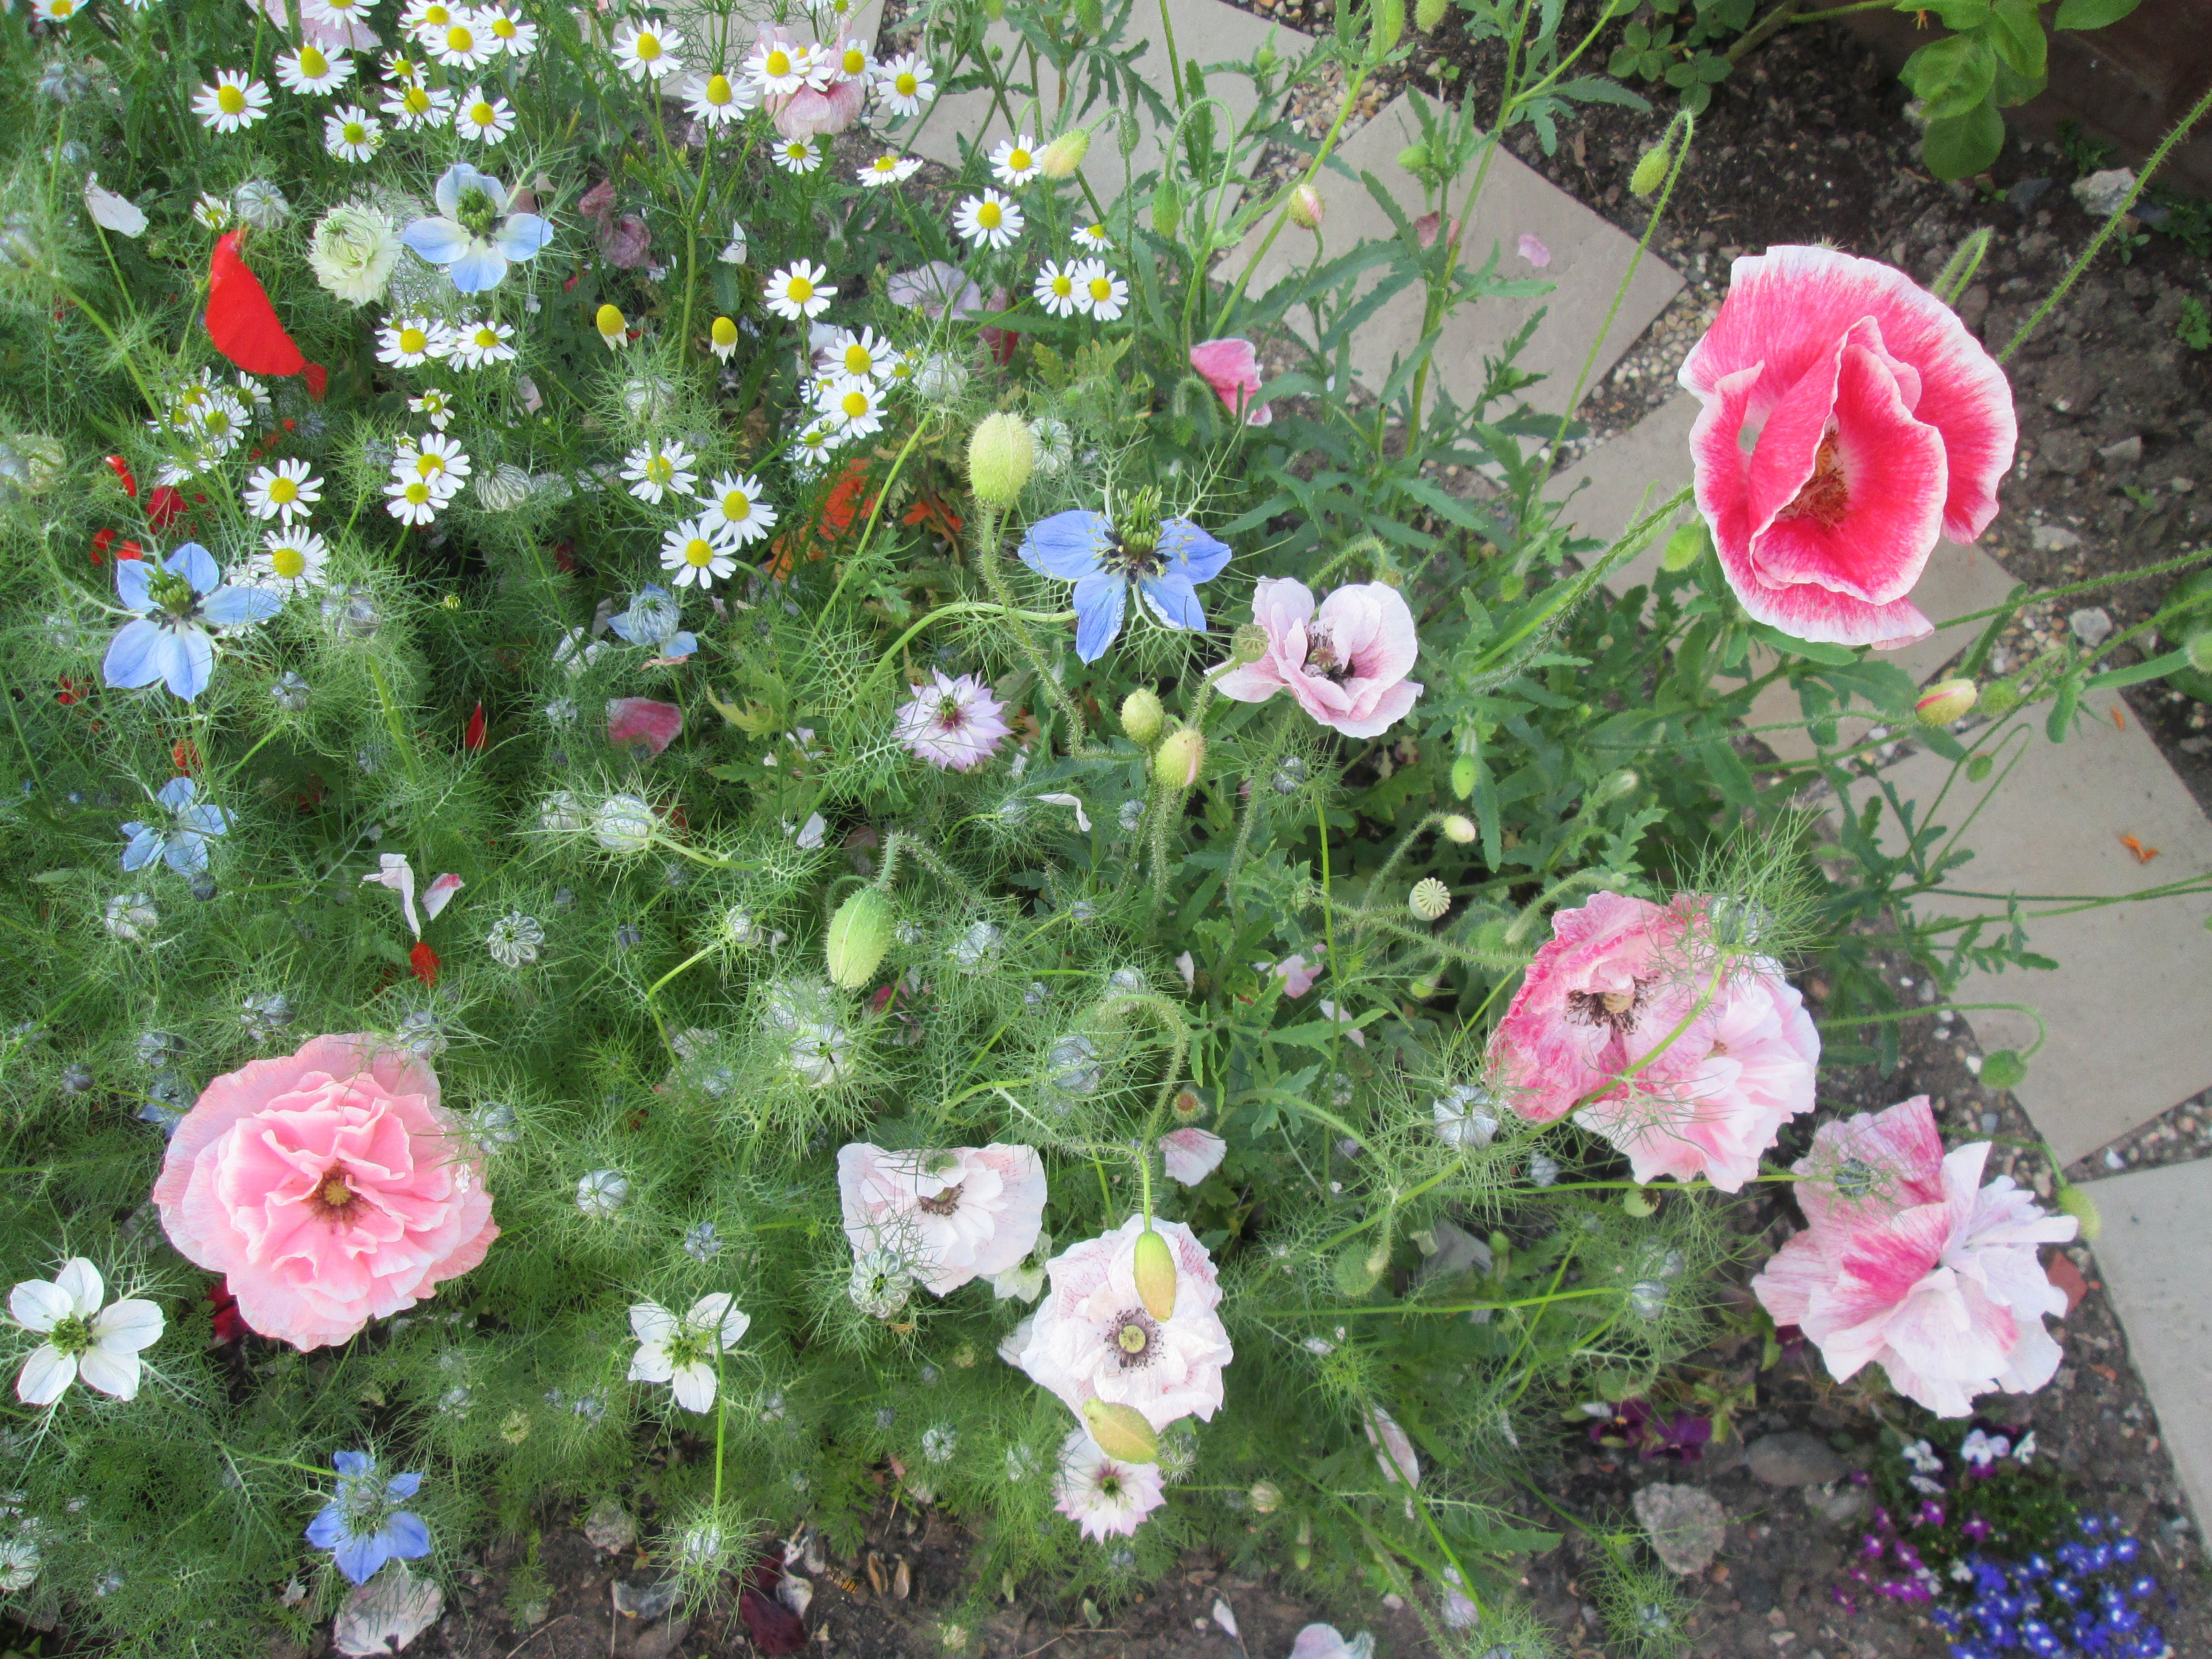 Angel Choir Poppies, Love In A Mist And Volunteer Daisy Plant